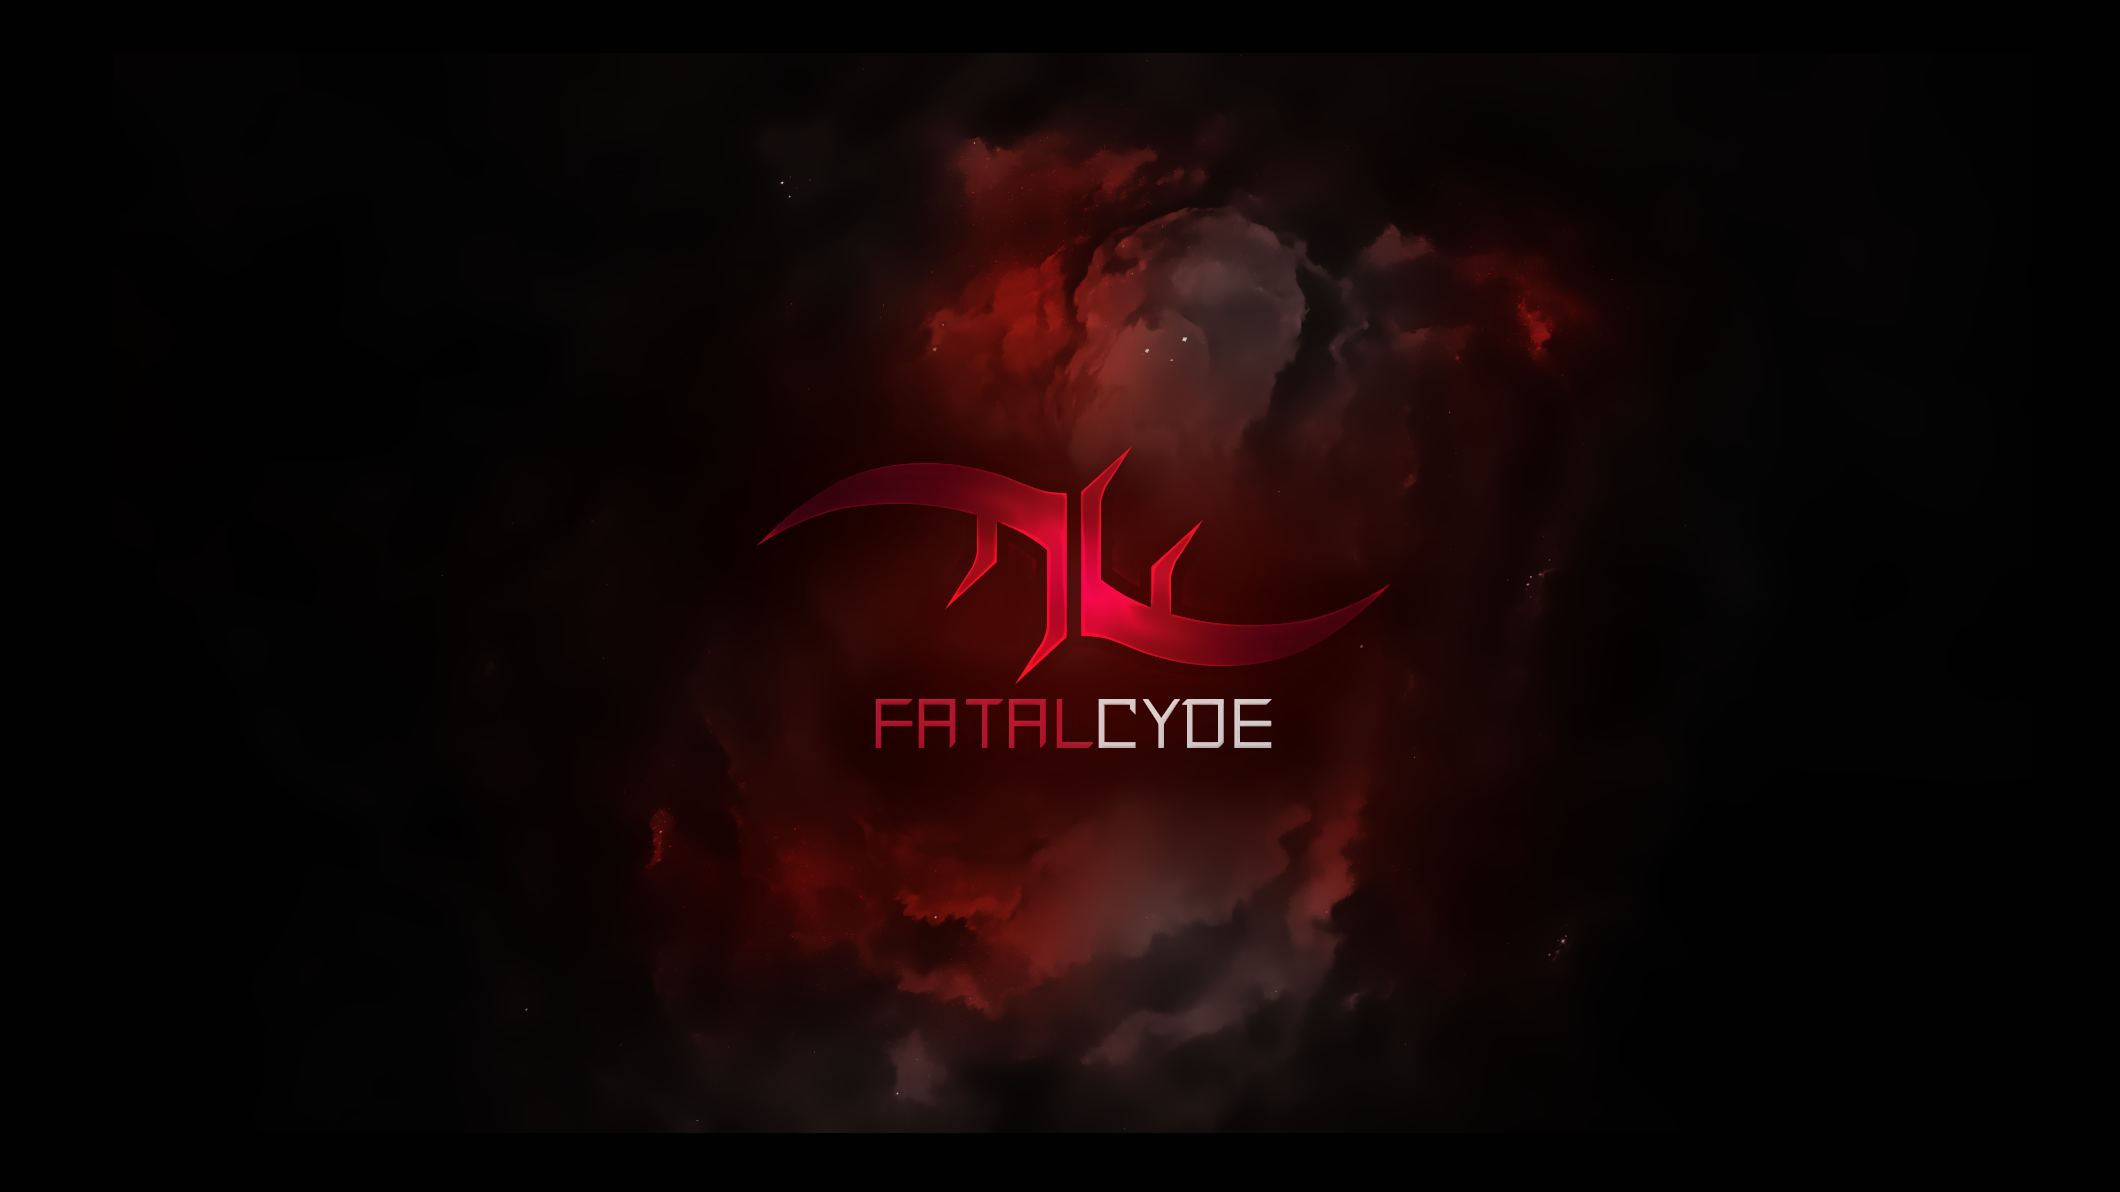 Fatalcyde Wallpaper_2466